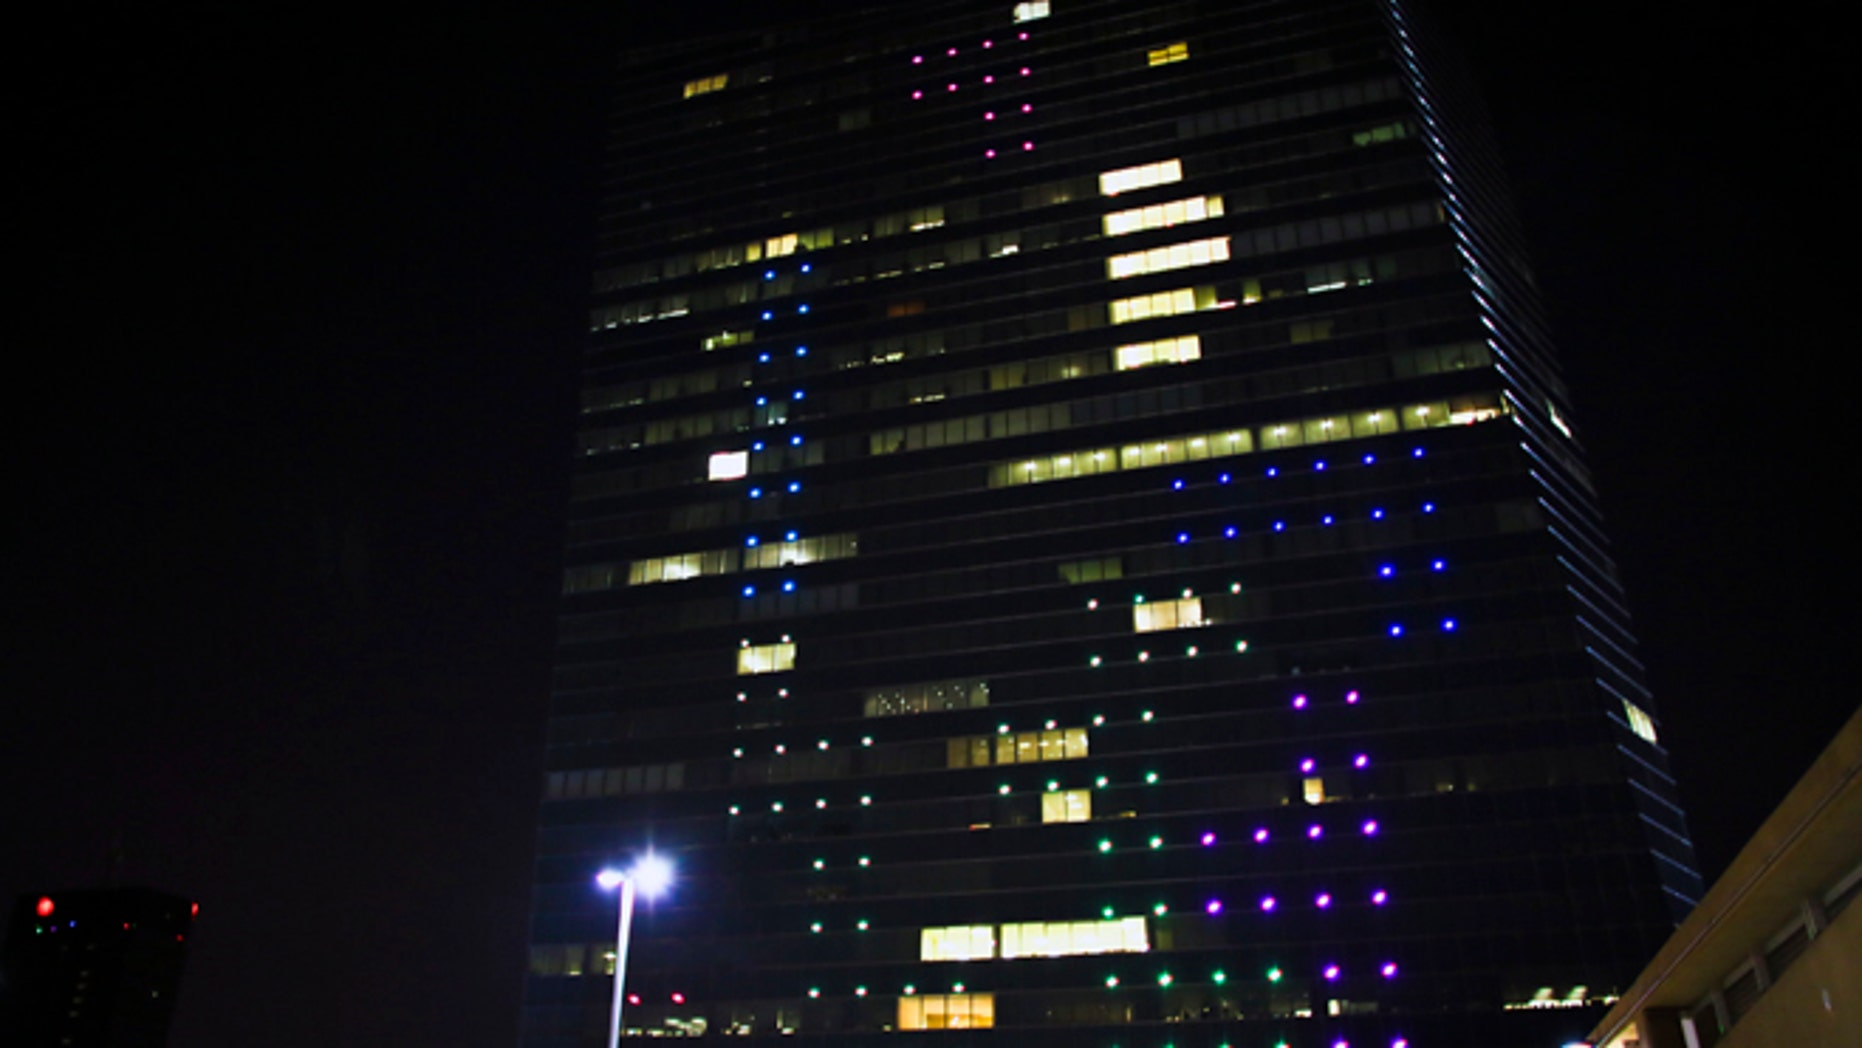 Apr. 5, 2014: The classic video game Tetris is played on the 29-story Cira Centre in Philadelphia using hundreds of LED lights embedded in its glass facade.